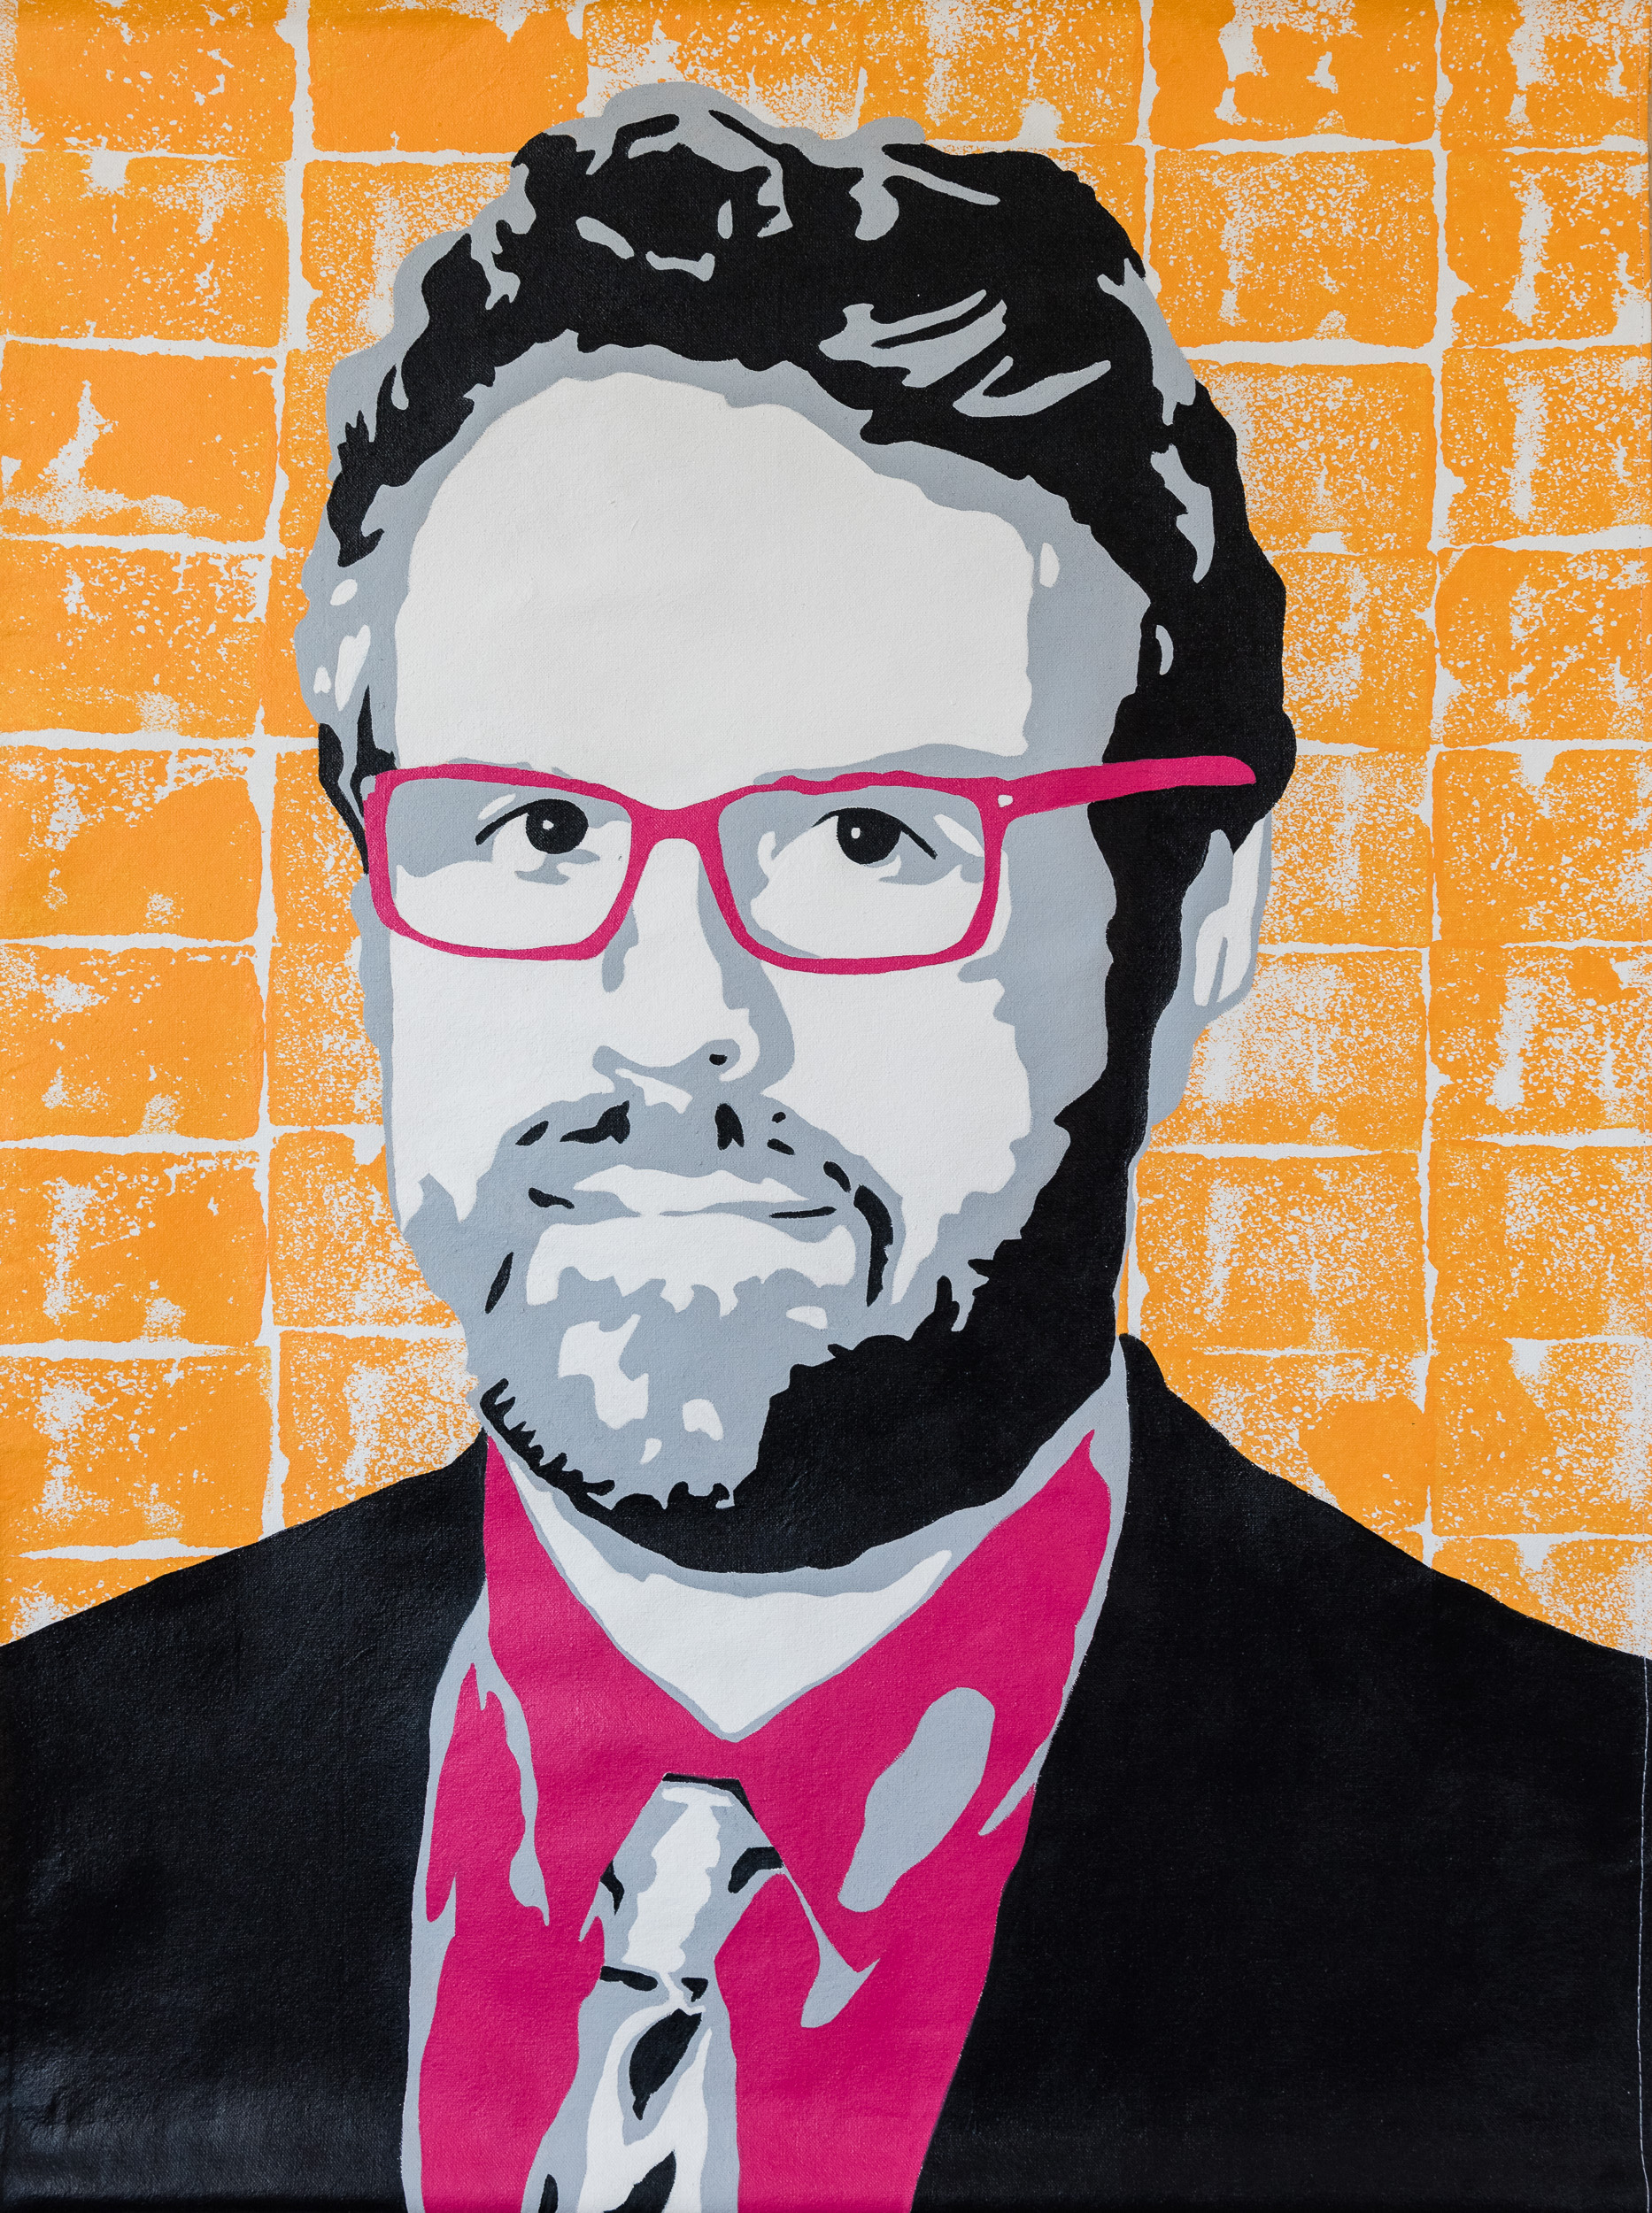 Event Art - Speaker Portrait for Energy Thought Summit in Austin, TX